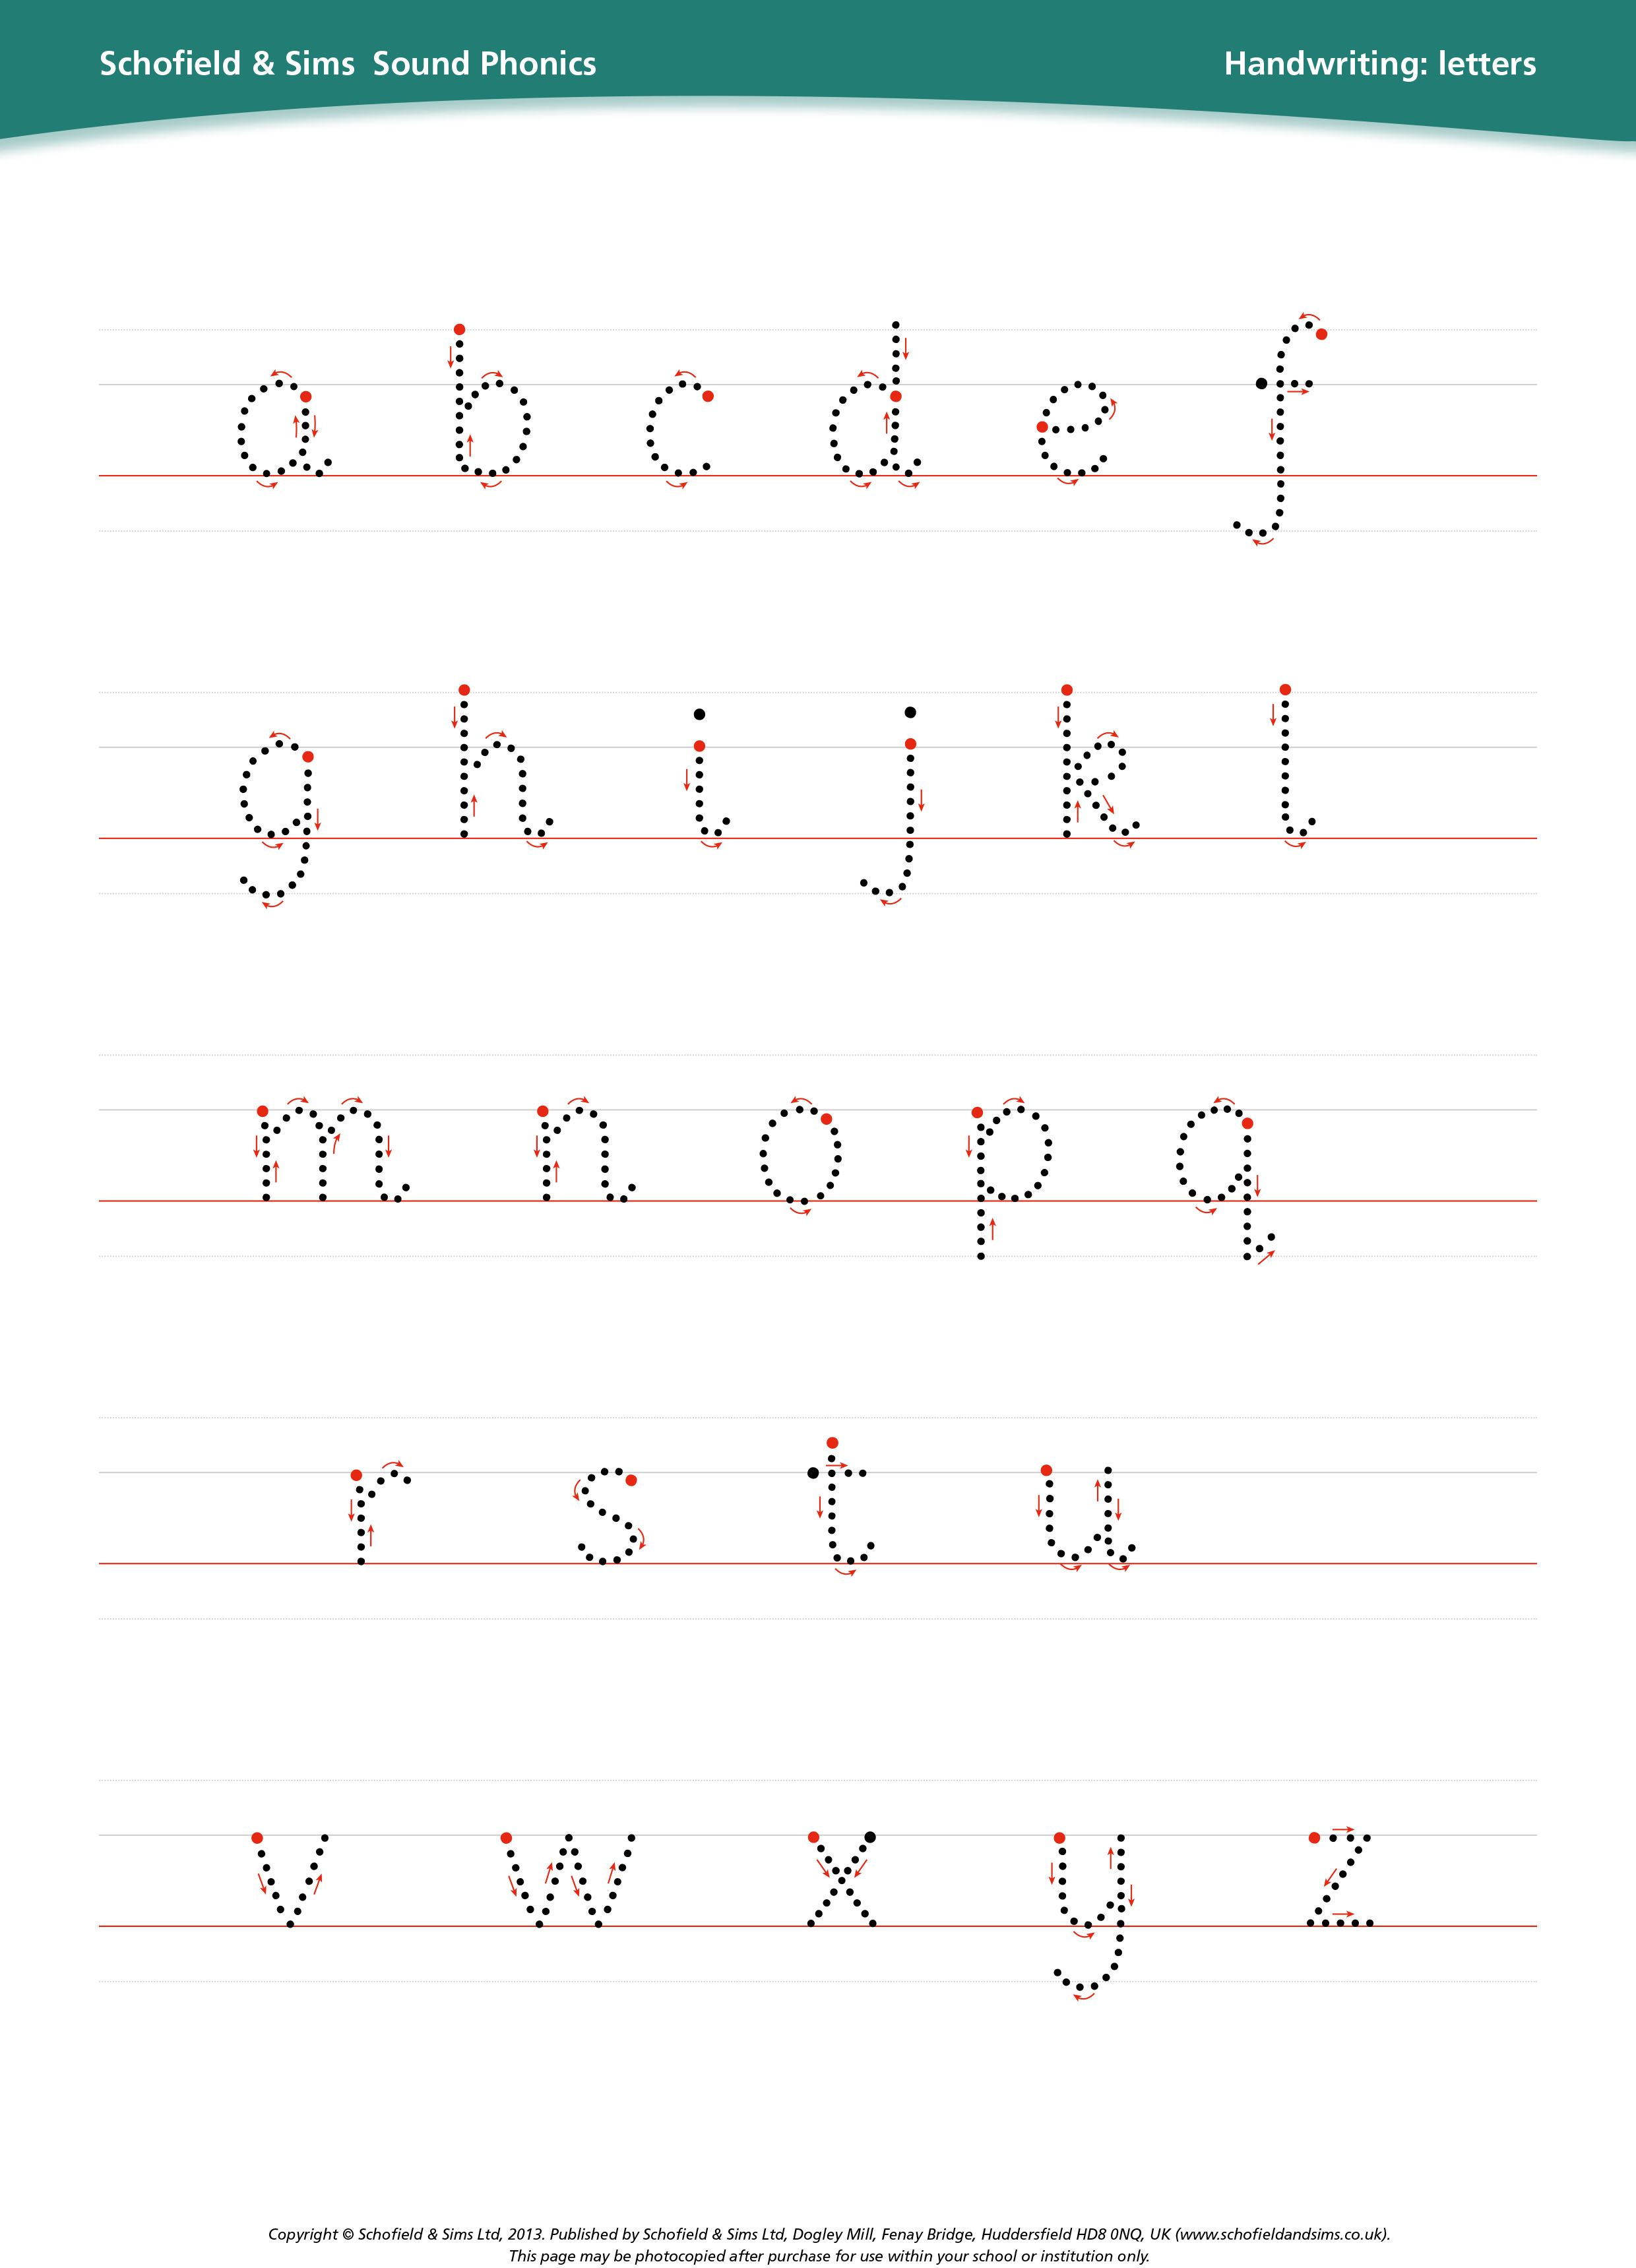 handwriting letters to teach children how to form letters properly ks1 eyfs handwriting. Black Bedroom Furniture Sets. Home Design Ideas